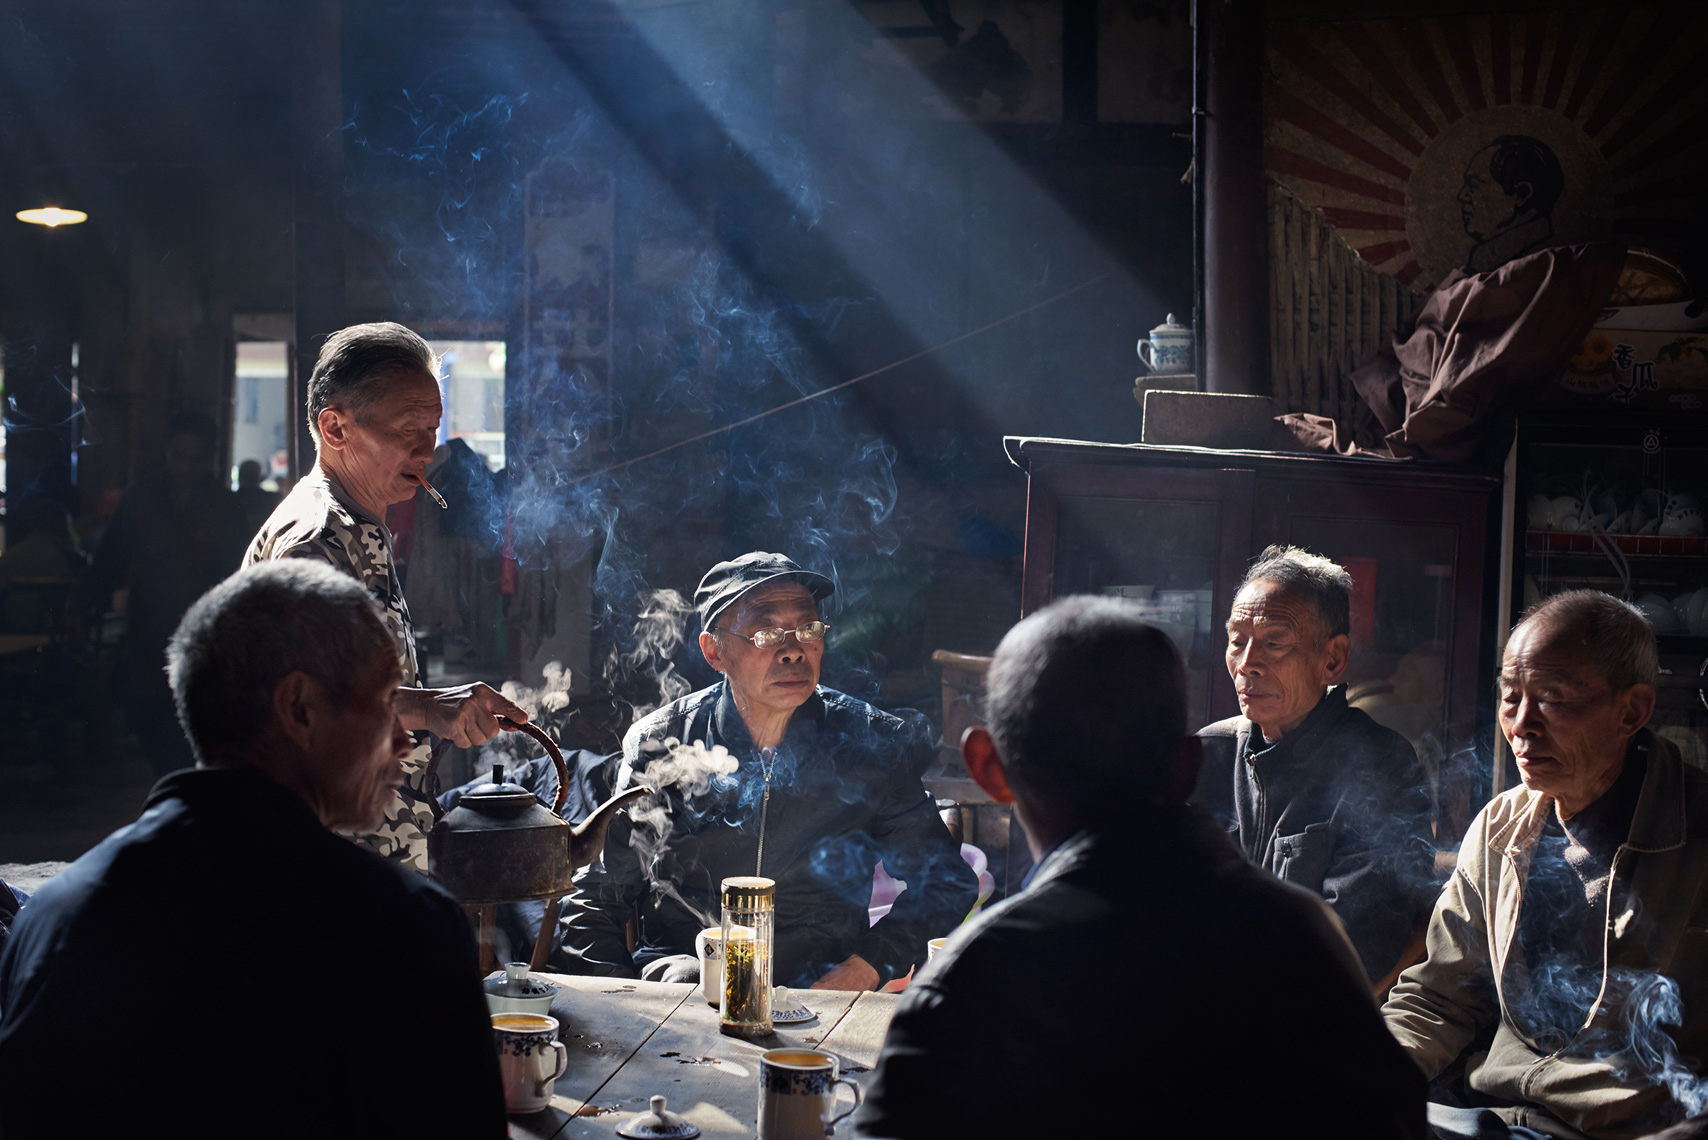 People Portraits Photography :  Gathering of friends in the oldest teahouse in China, Sichuan province